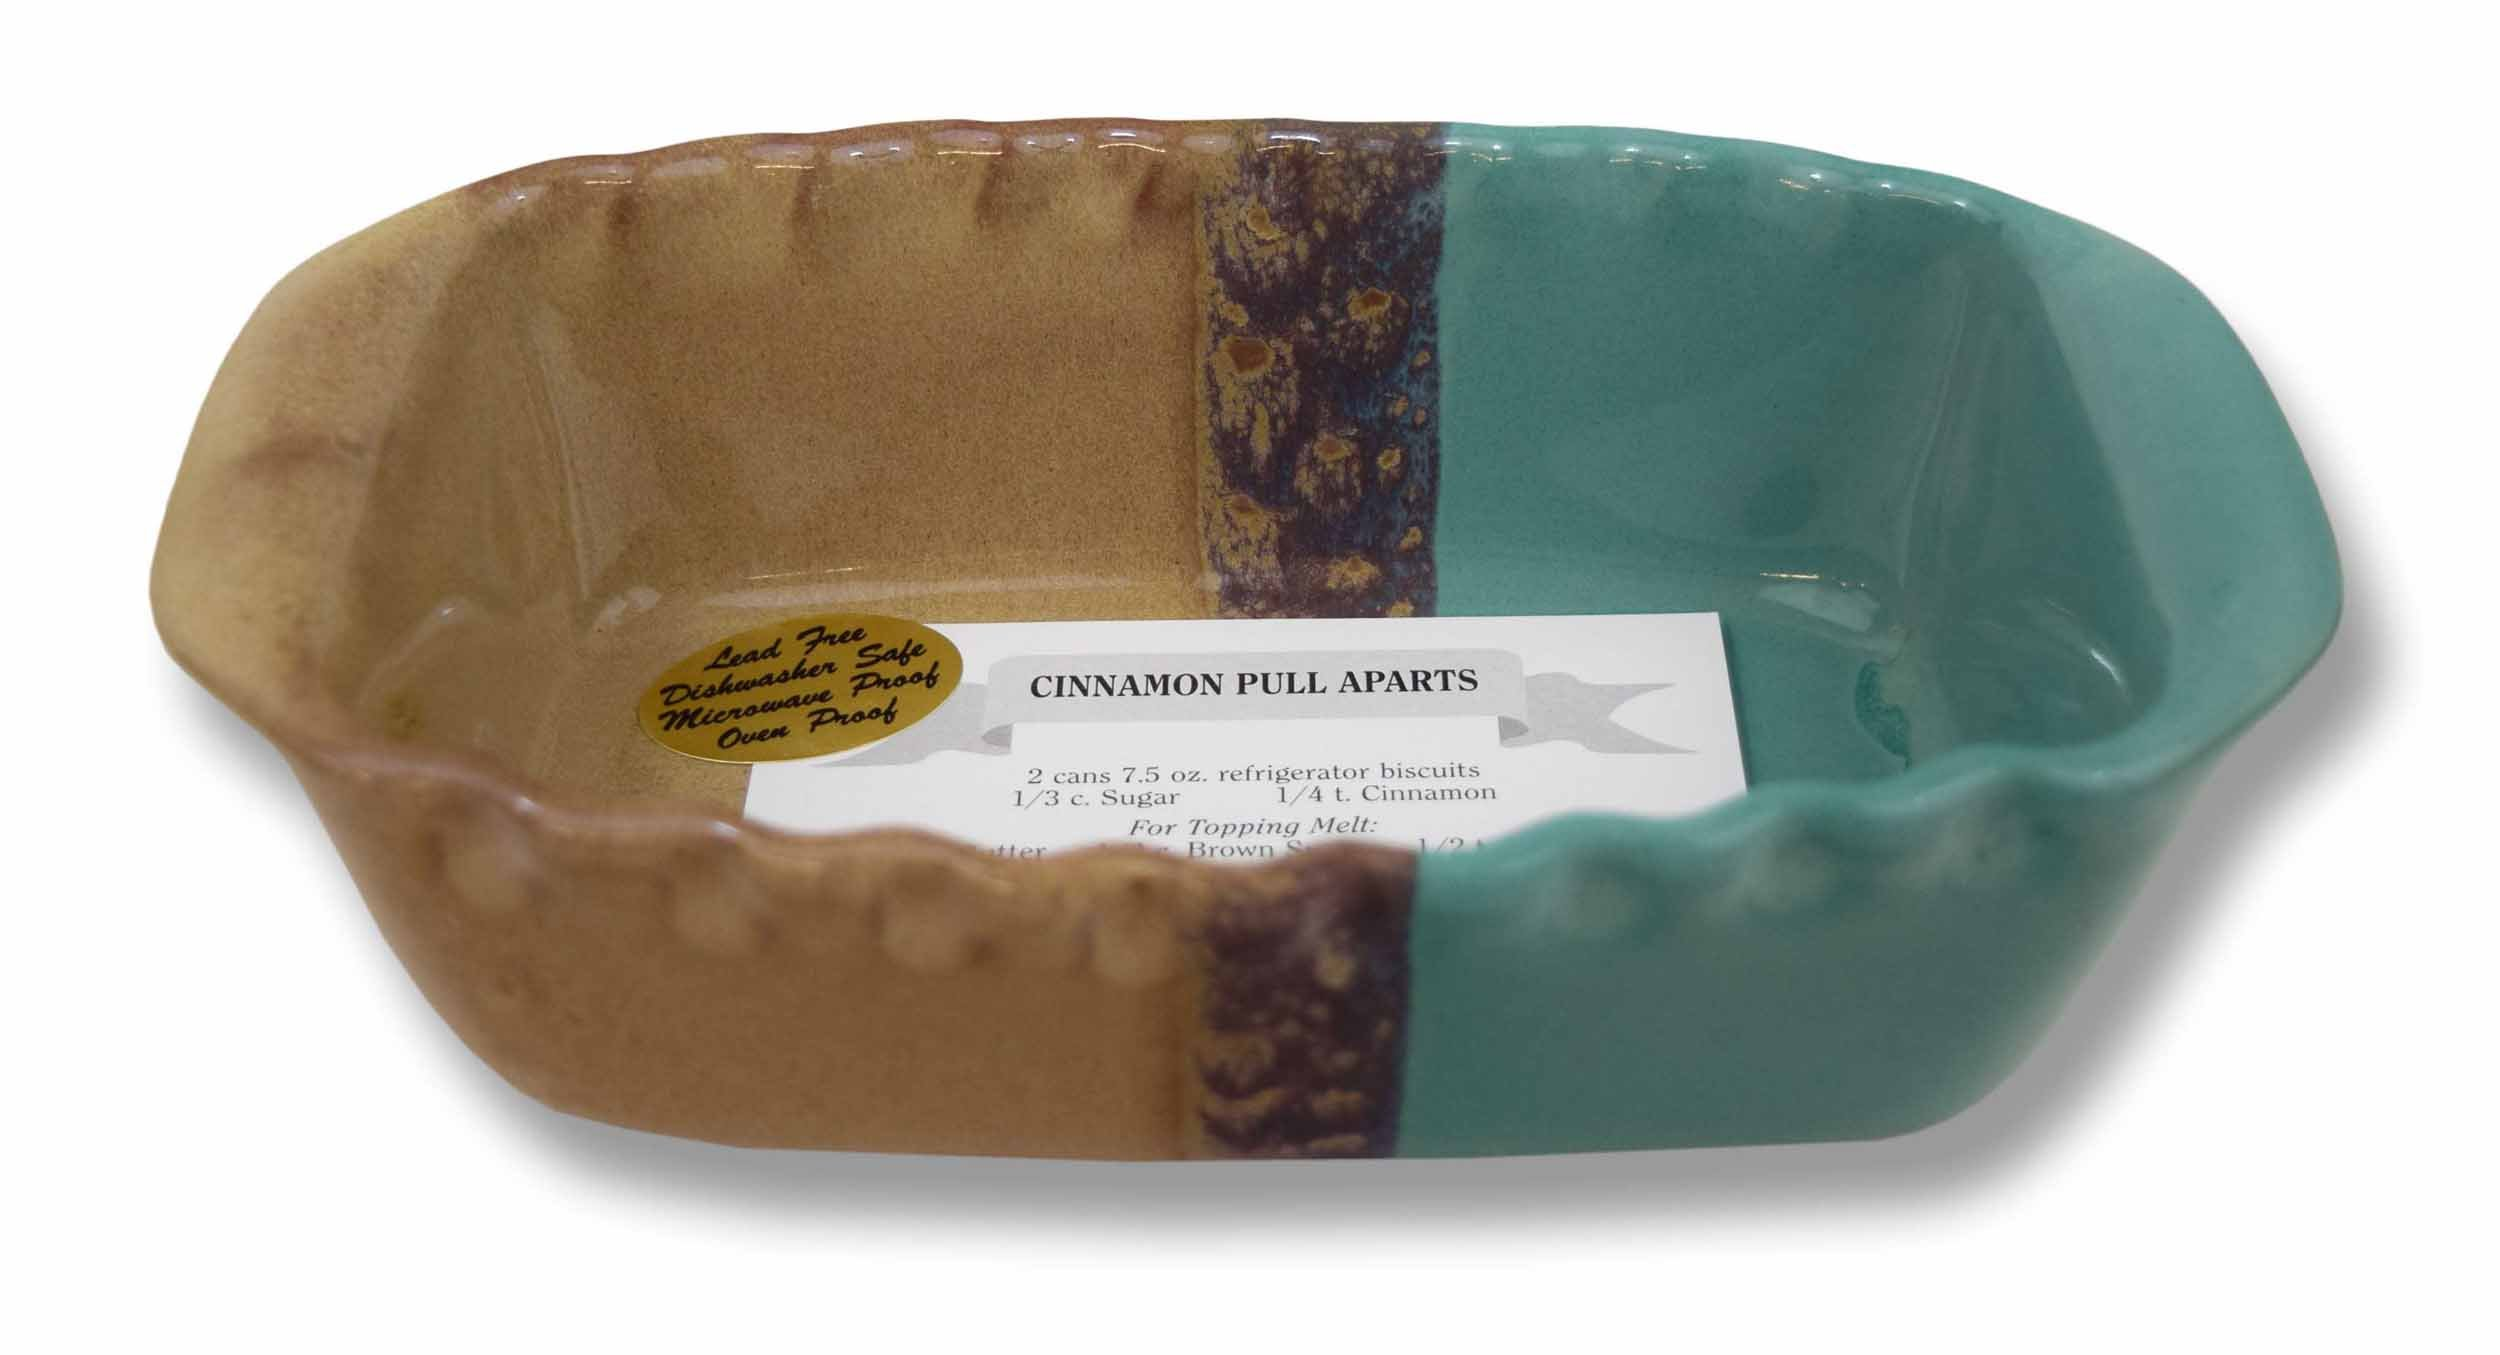 Clay In Motion Handmade Ceramic 1.25 Quart Loaf Pan - Island Oasis by Clay in Motion (Image #1)